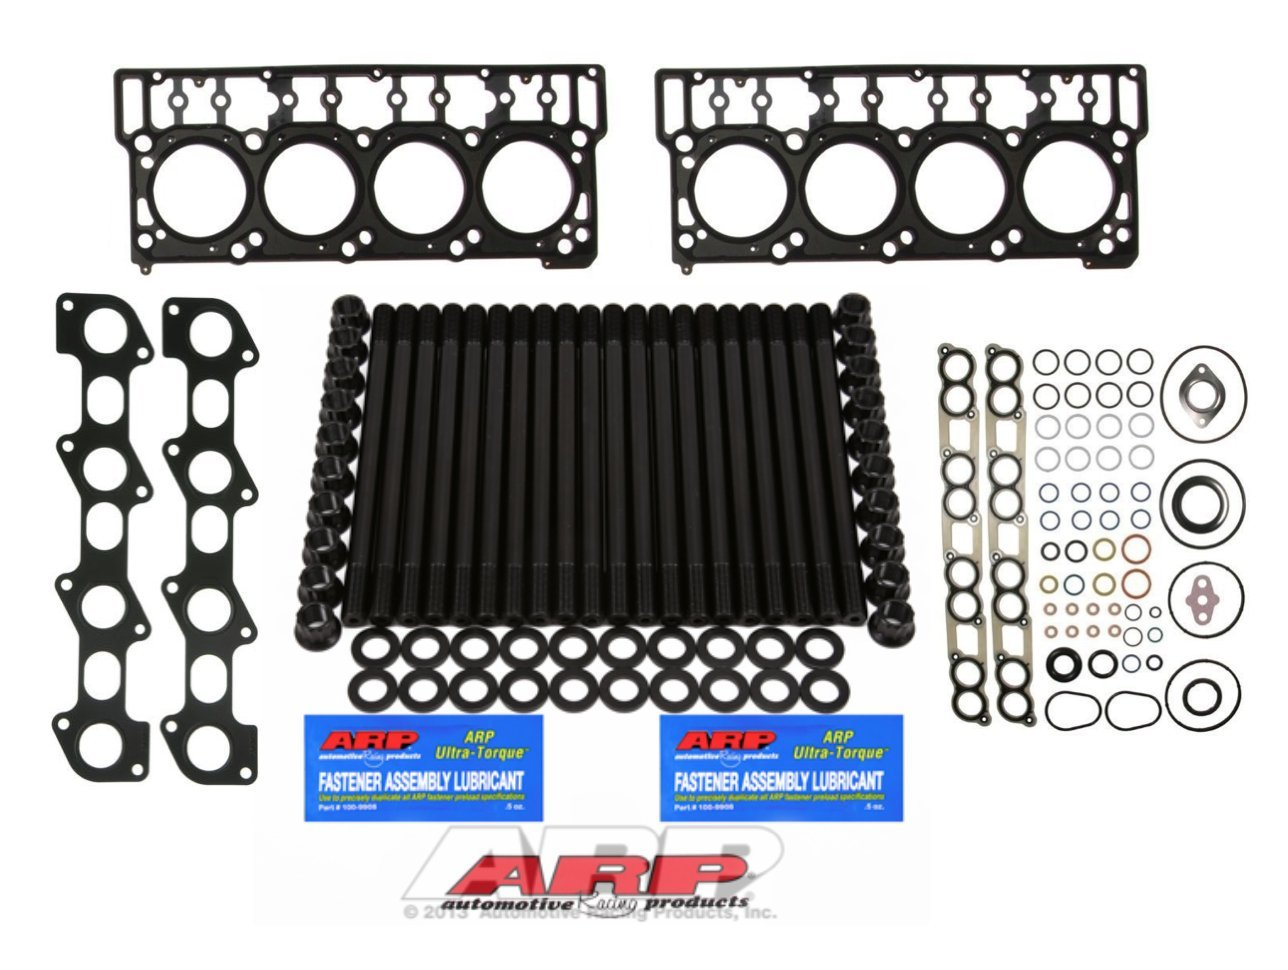 06-07 Ford Powerstroke 6.0L Diesel Custom ARP Head Stud Kit &Oem Style 20mm Head Gaskets & Intake Manifold Installation Kit & Exhaust Gaskets - Solution Kit - Bundle